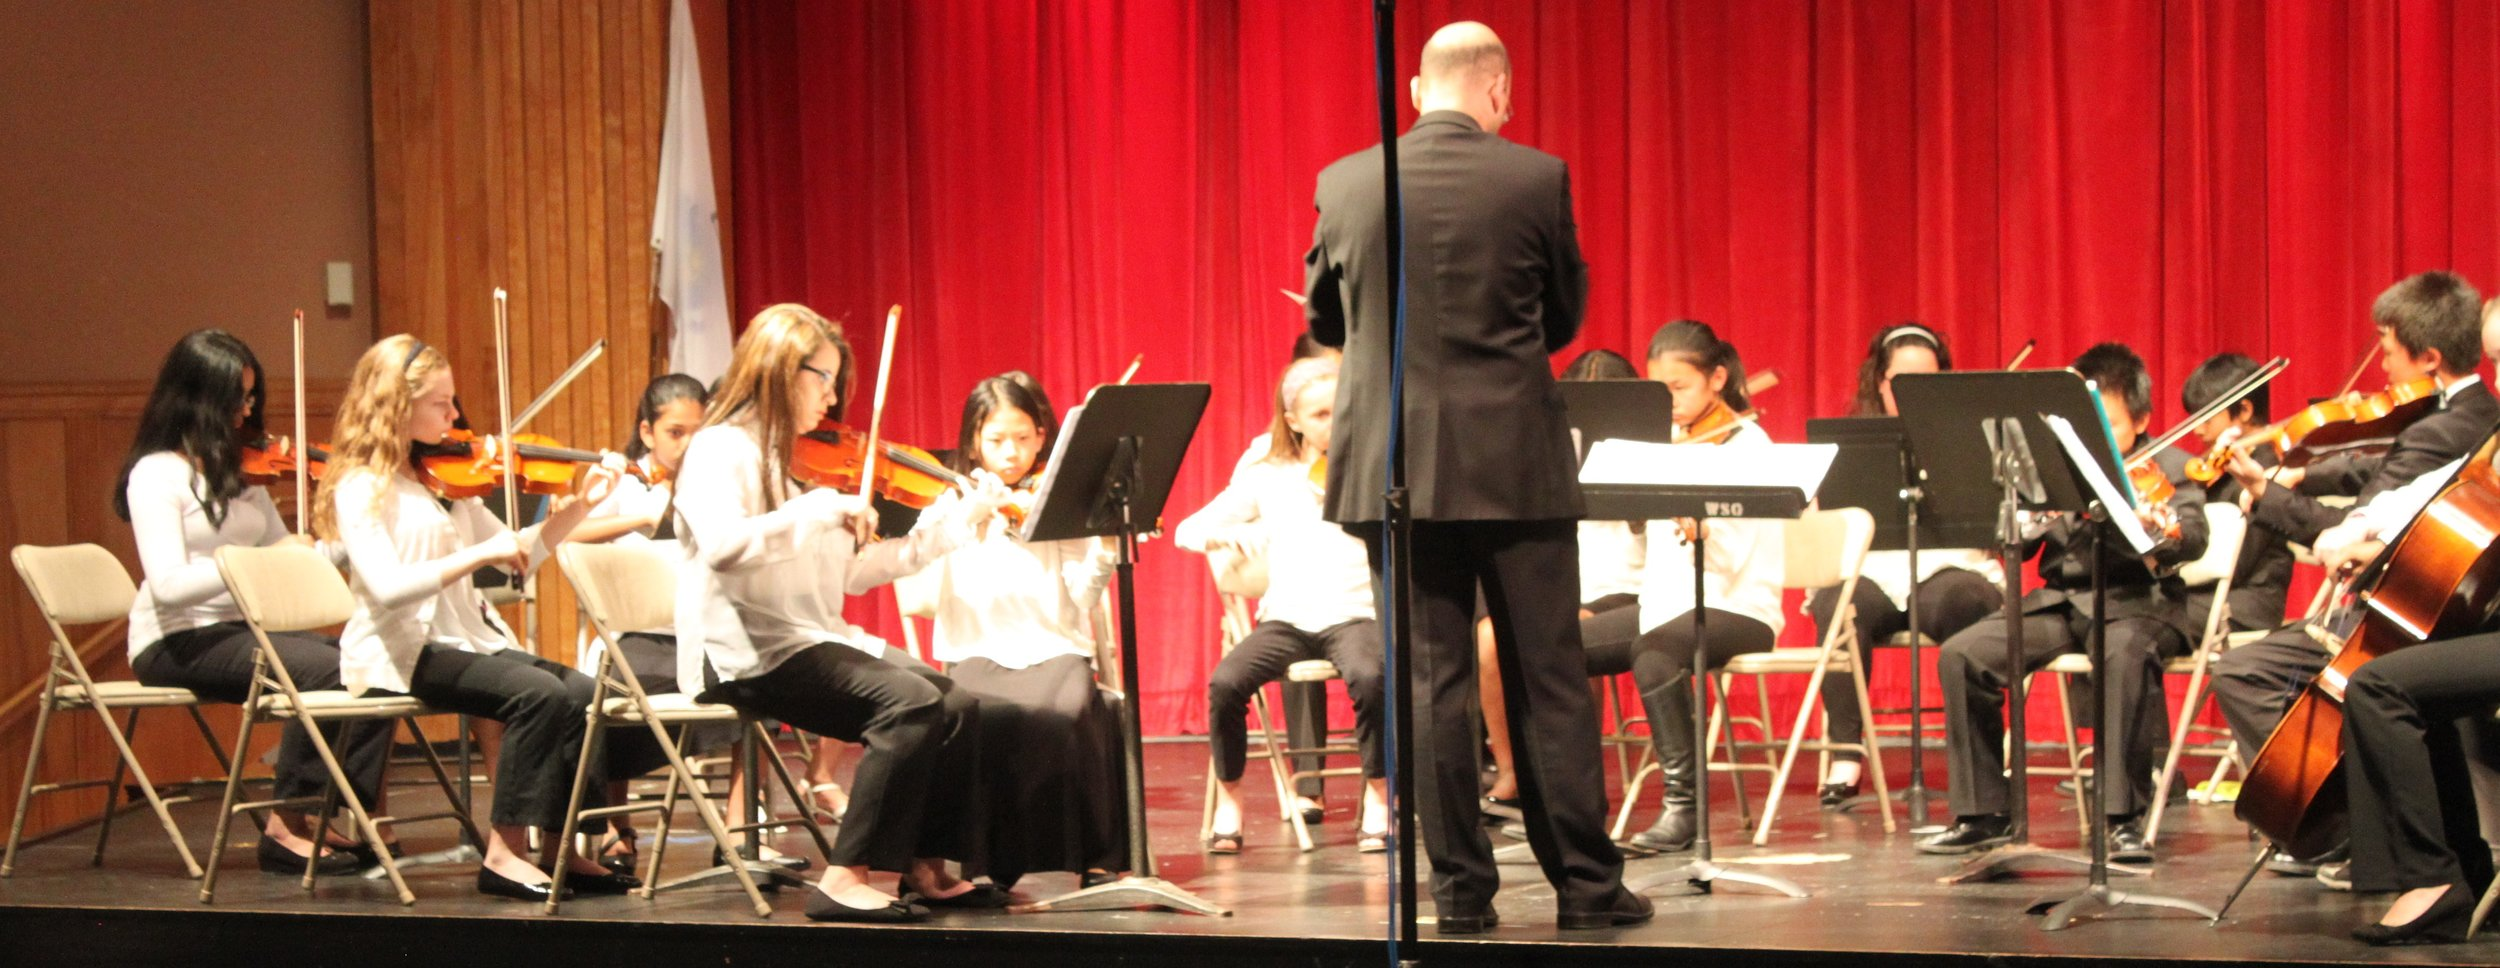 Dimitar Petkov leads members of the Claflin Hill Youth Repertory Ensemble